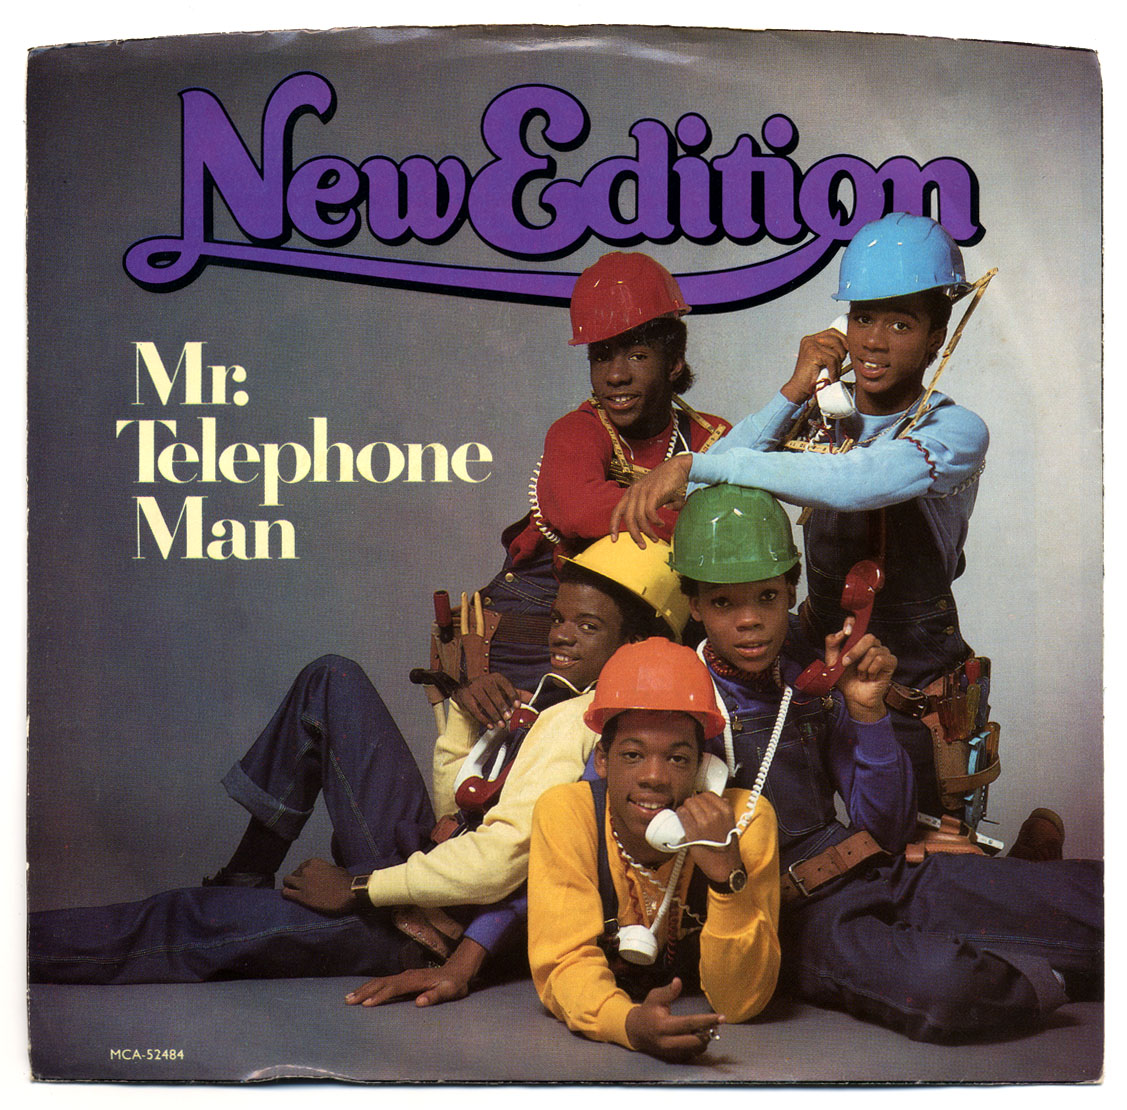 Ca C'est Saveur! : New Edition - Mr. Telephone Man ... Rolling In The Deep Lyrics